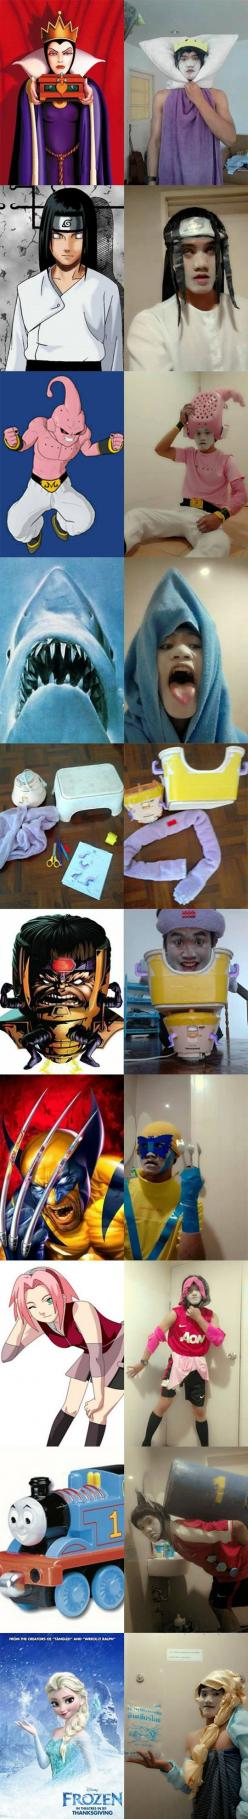 Cosplaying On a Budget // funny pictures - funny photos - funny images - funny pics - funny quotes - #lol #humor #funnypictures: Funny Pics, Photos Funny, Humor Funnypictures, Funny Pictures, Pictures Funny, Funny Images, Funny Quotes, Funny Photos